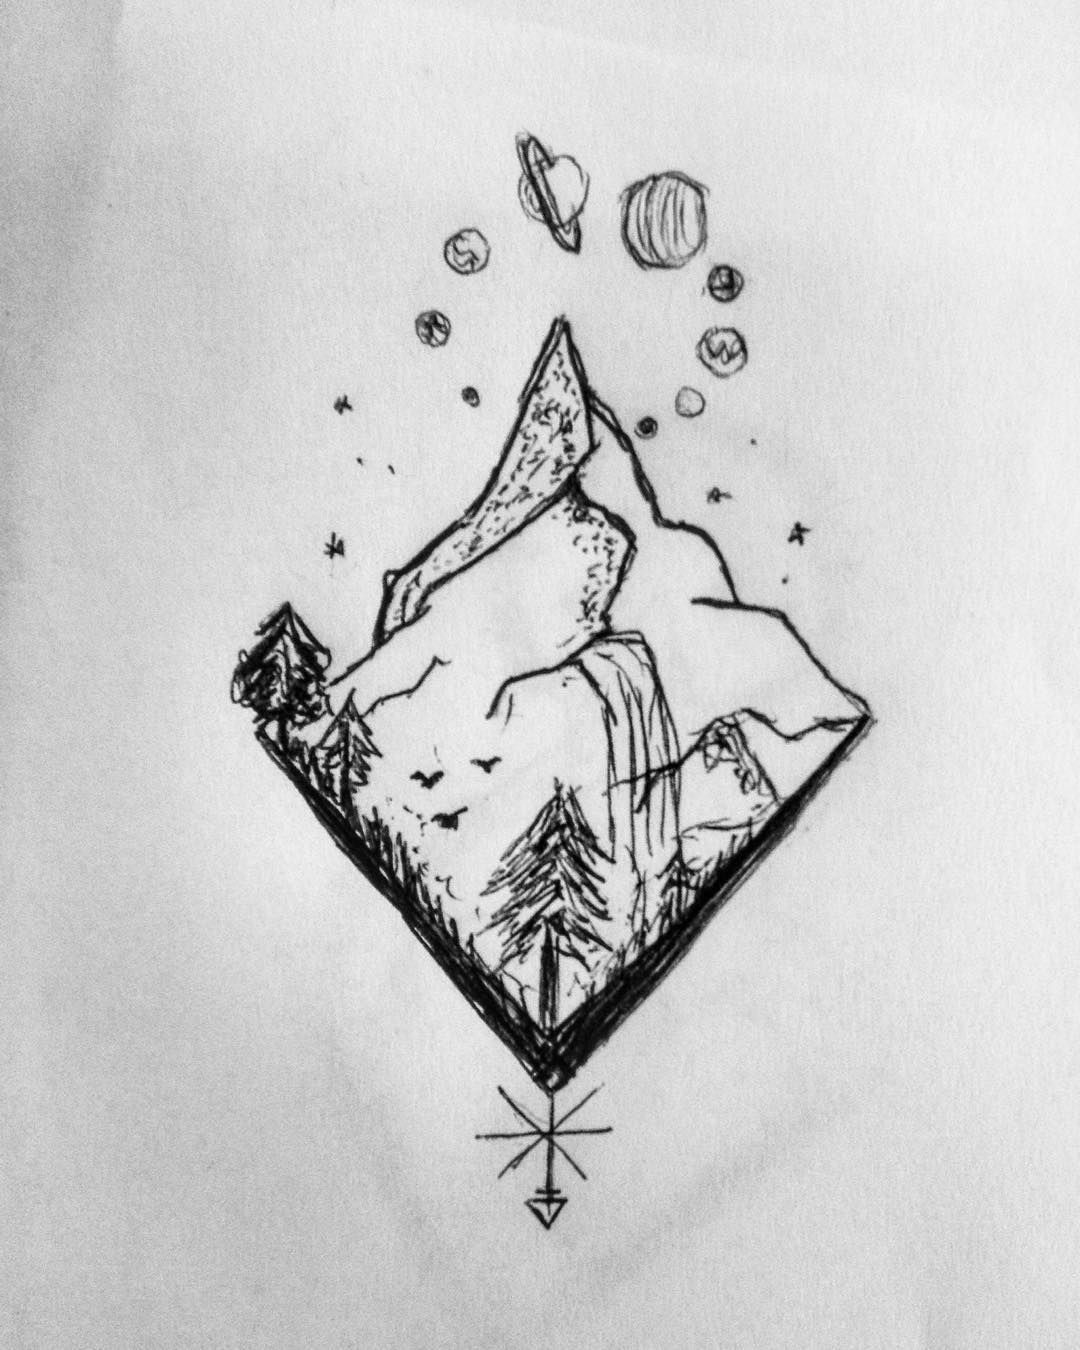 THIS WOULD BE PERFECT FOR A TATTOO!!!! You take it like